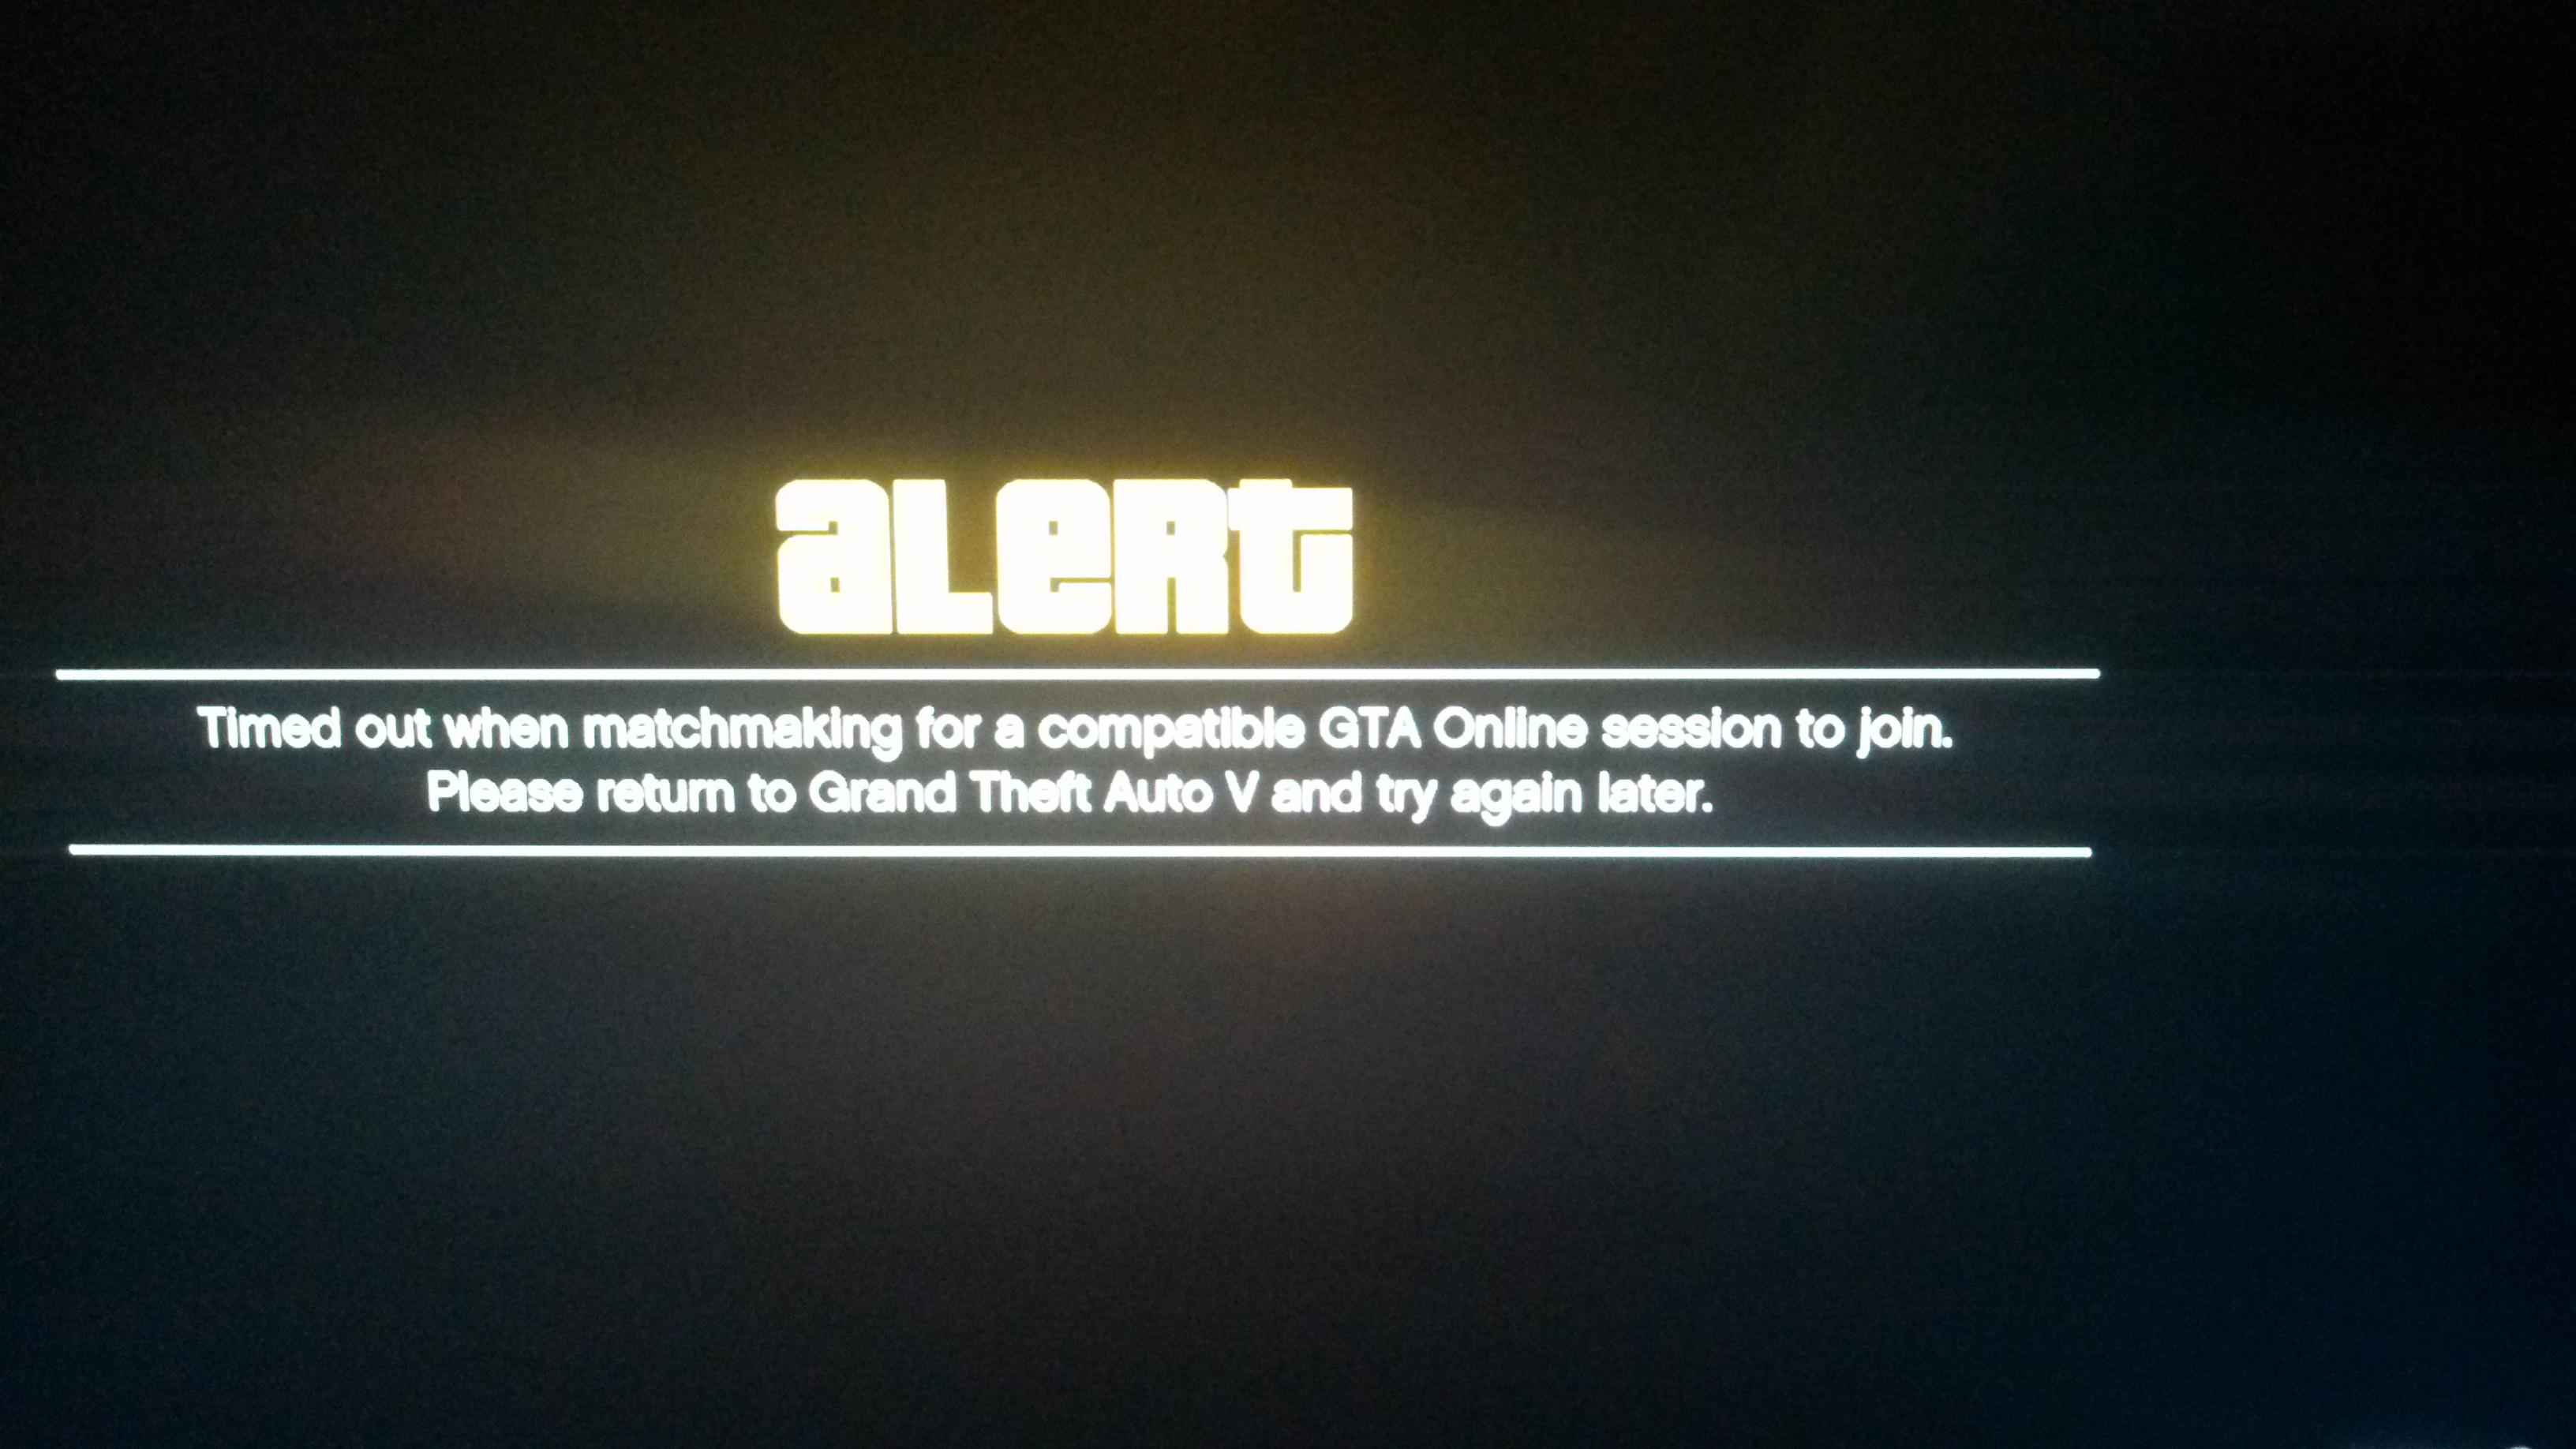 Grand Theft Auto v matchmaking